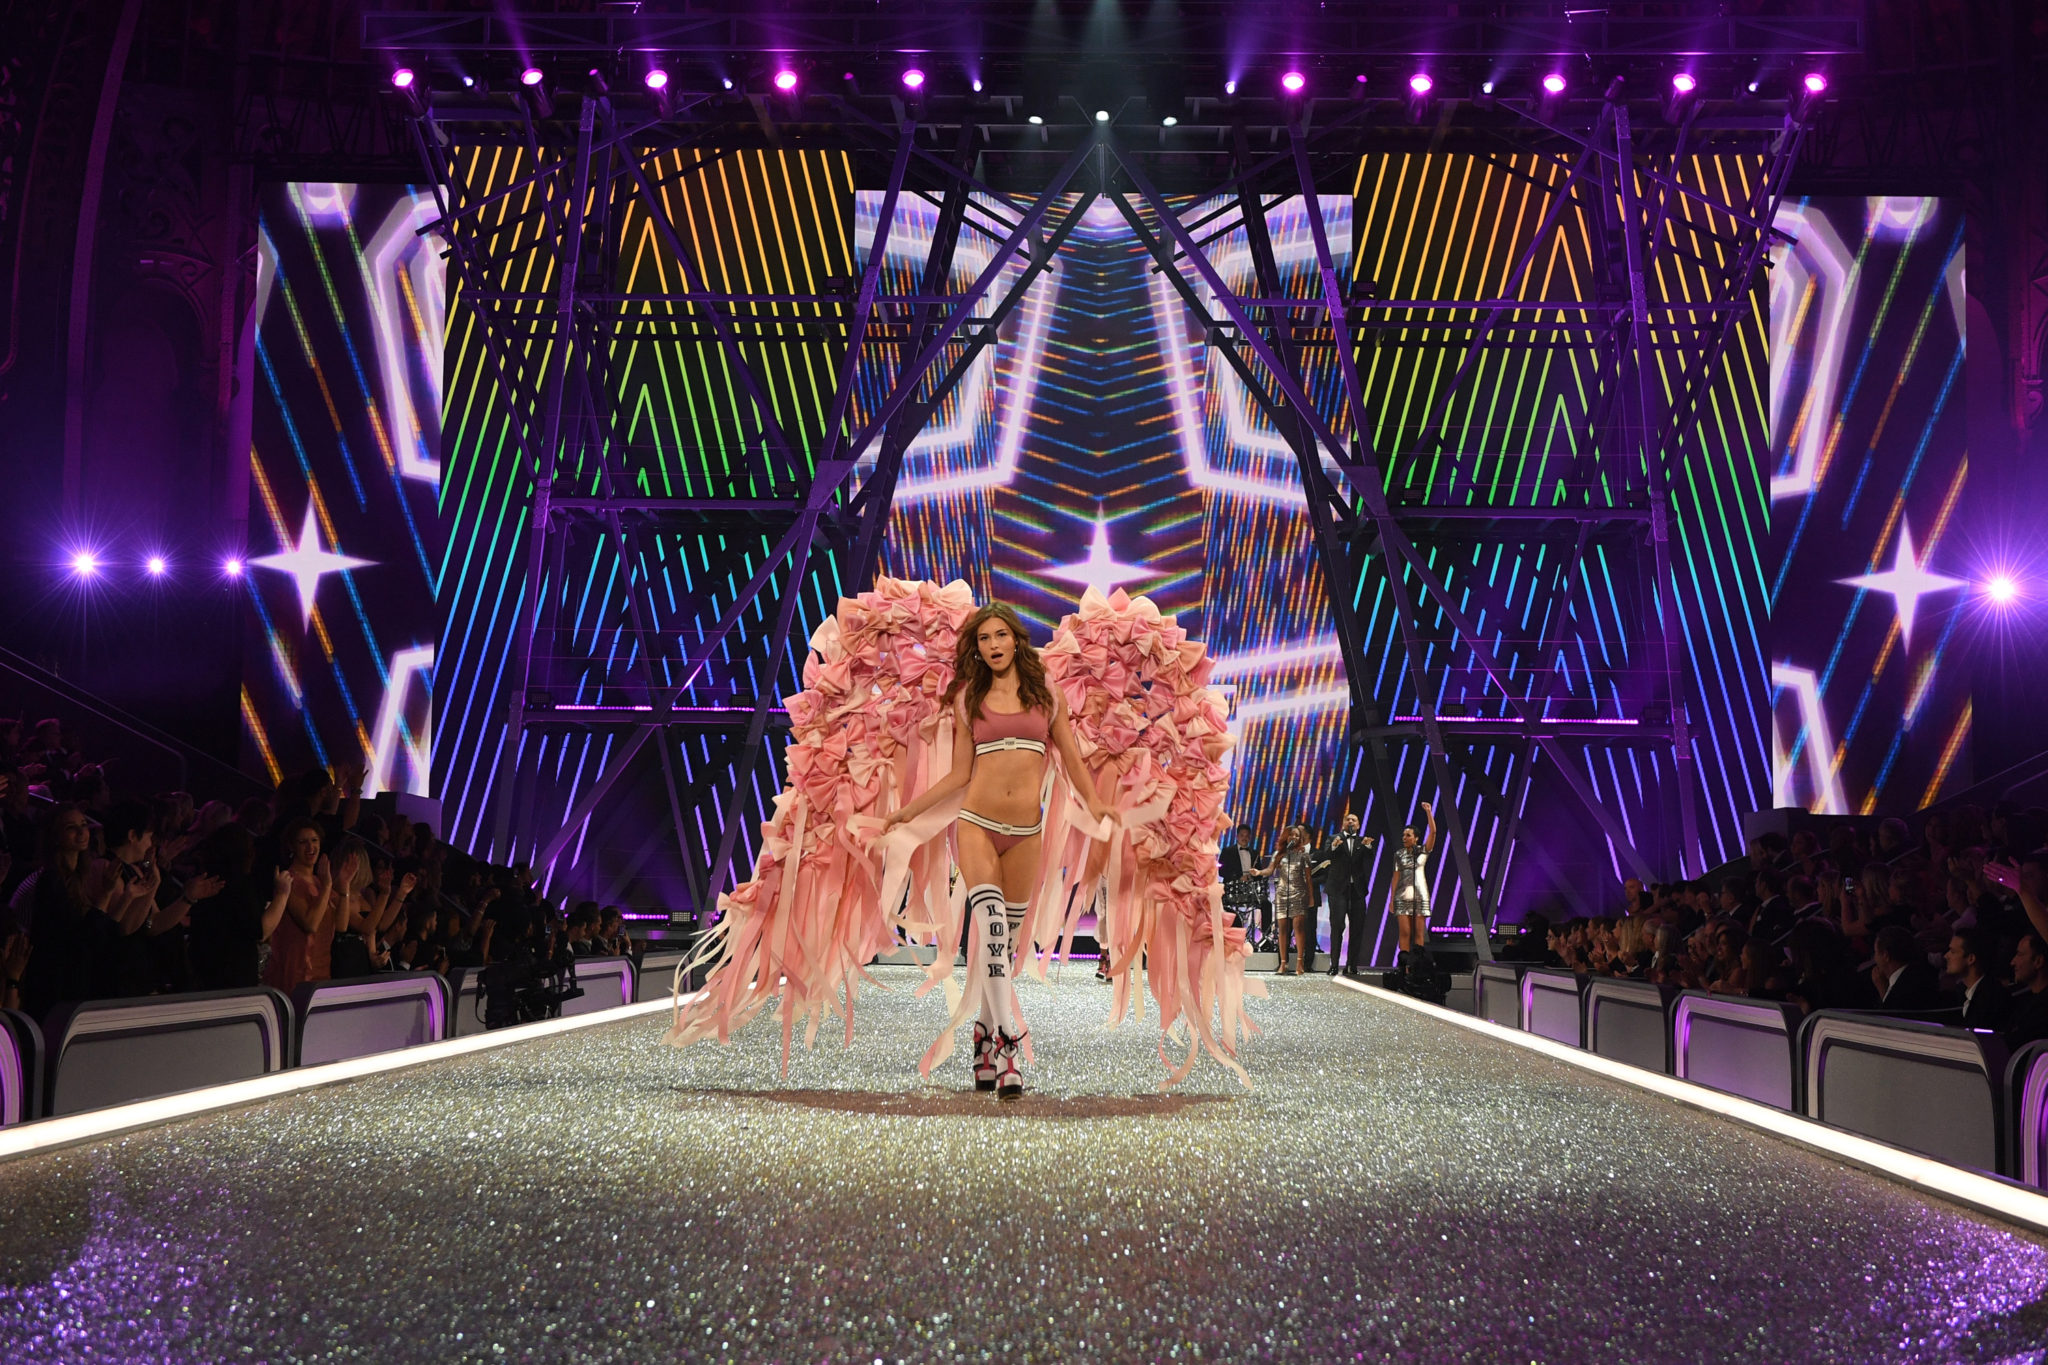 PARIS, FRANCE - NOVEMBER 30: Grace Elizabeth walks the runway during the 2016 Victoria's Secret Fashion Show on November 30, 2016 in Paris, France. (Photo by Dimitrios Kambouris/Getty Images for Victoria's Secret)